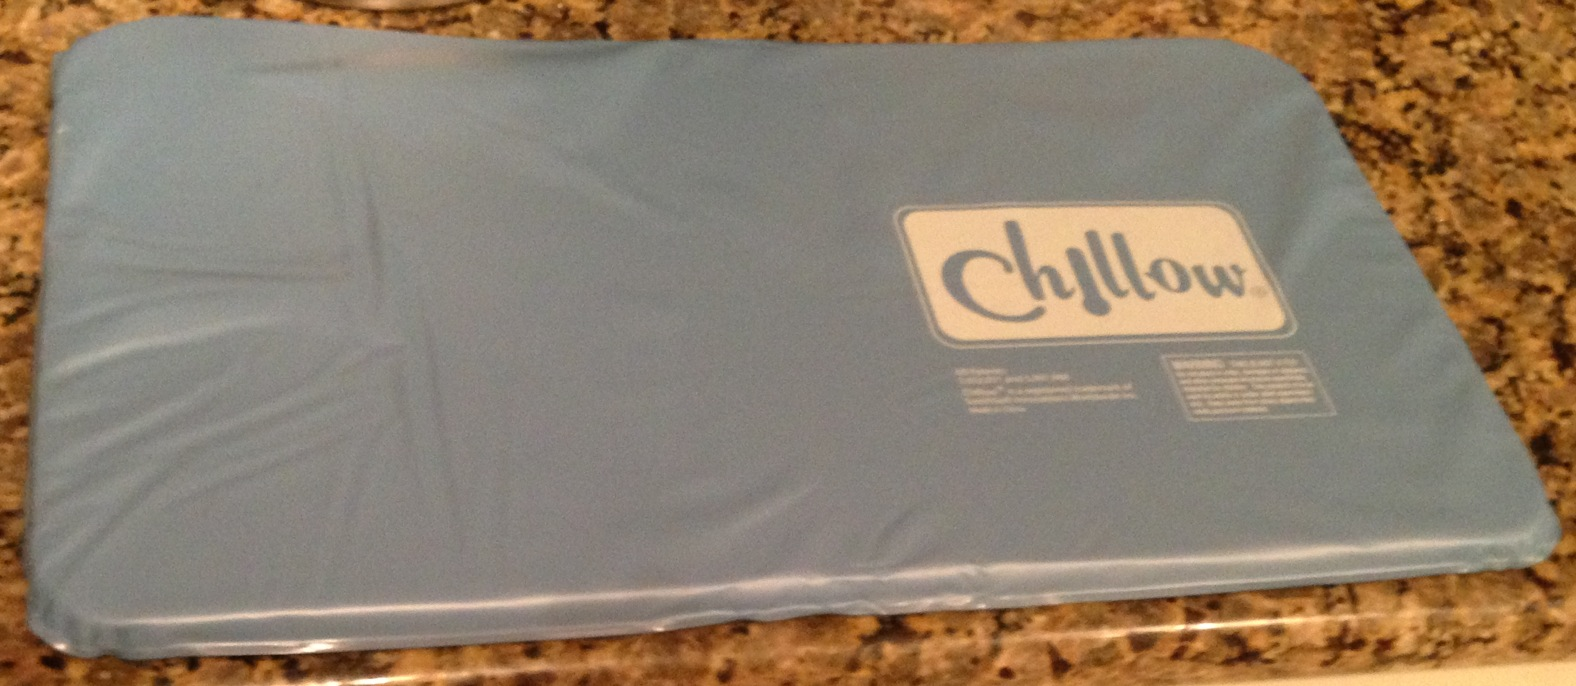 As Seen On Tv Chillow Personal Cooling Pad Who Said